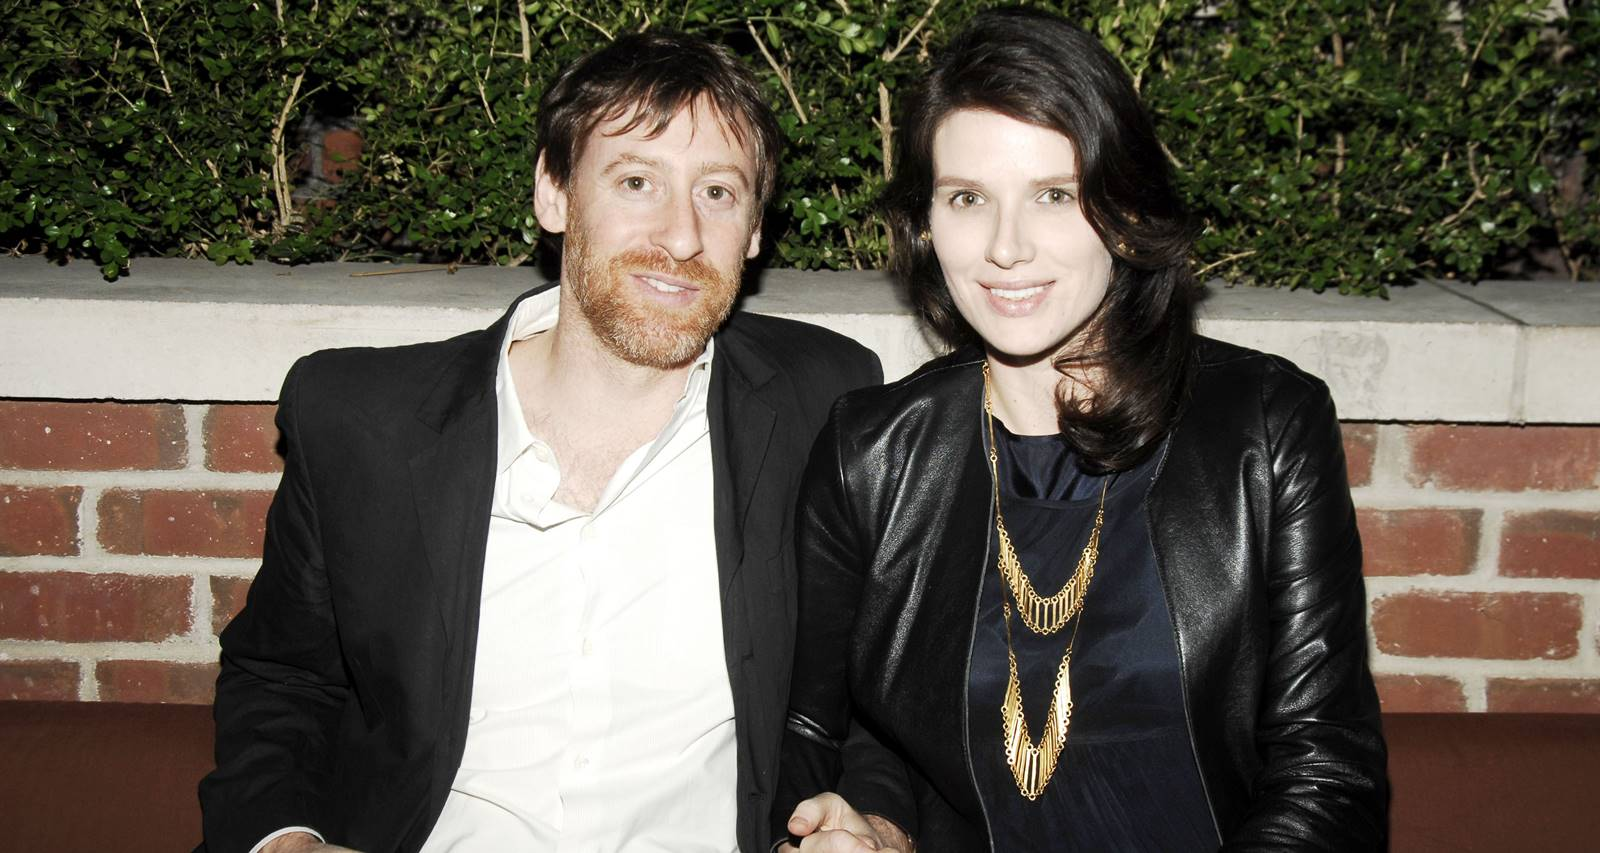 Mishna Wolff Wiki, Age, Parents, Family, Career and Facts About Comedian Marc Maron's Ex-Wife